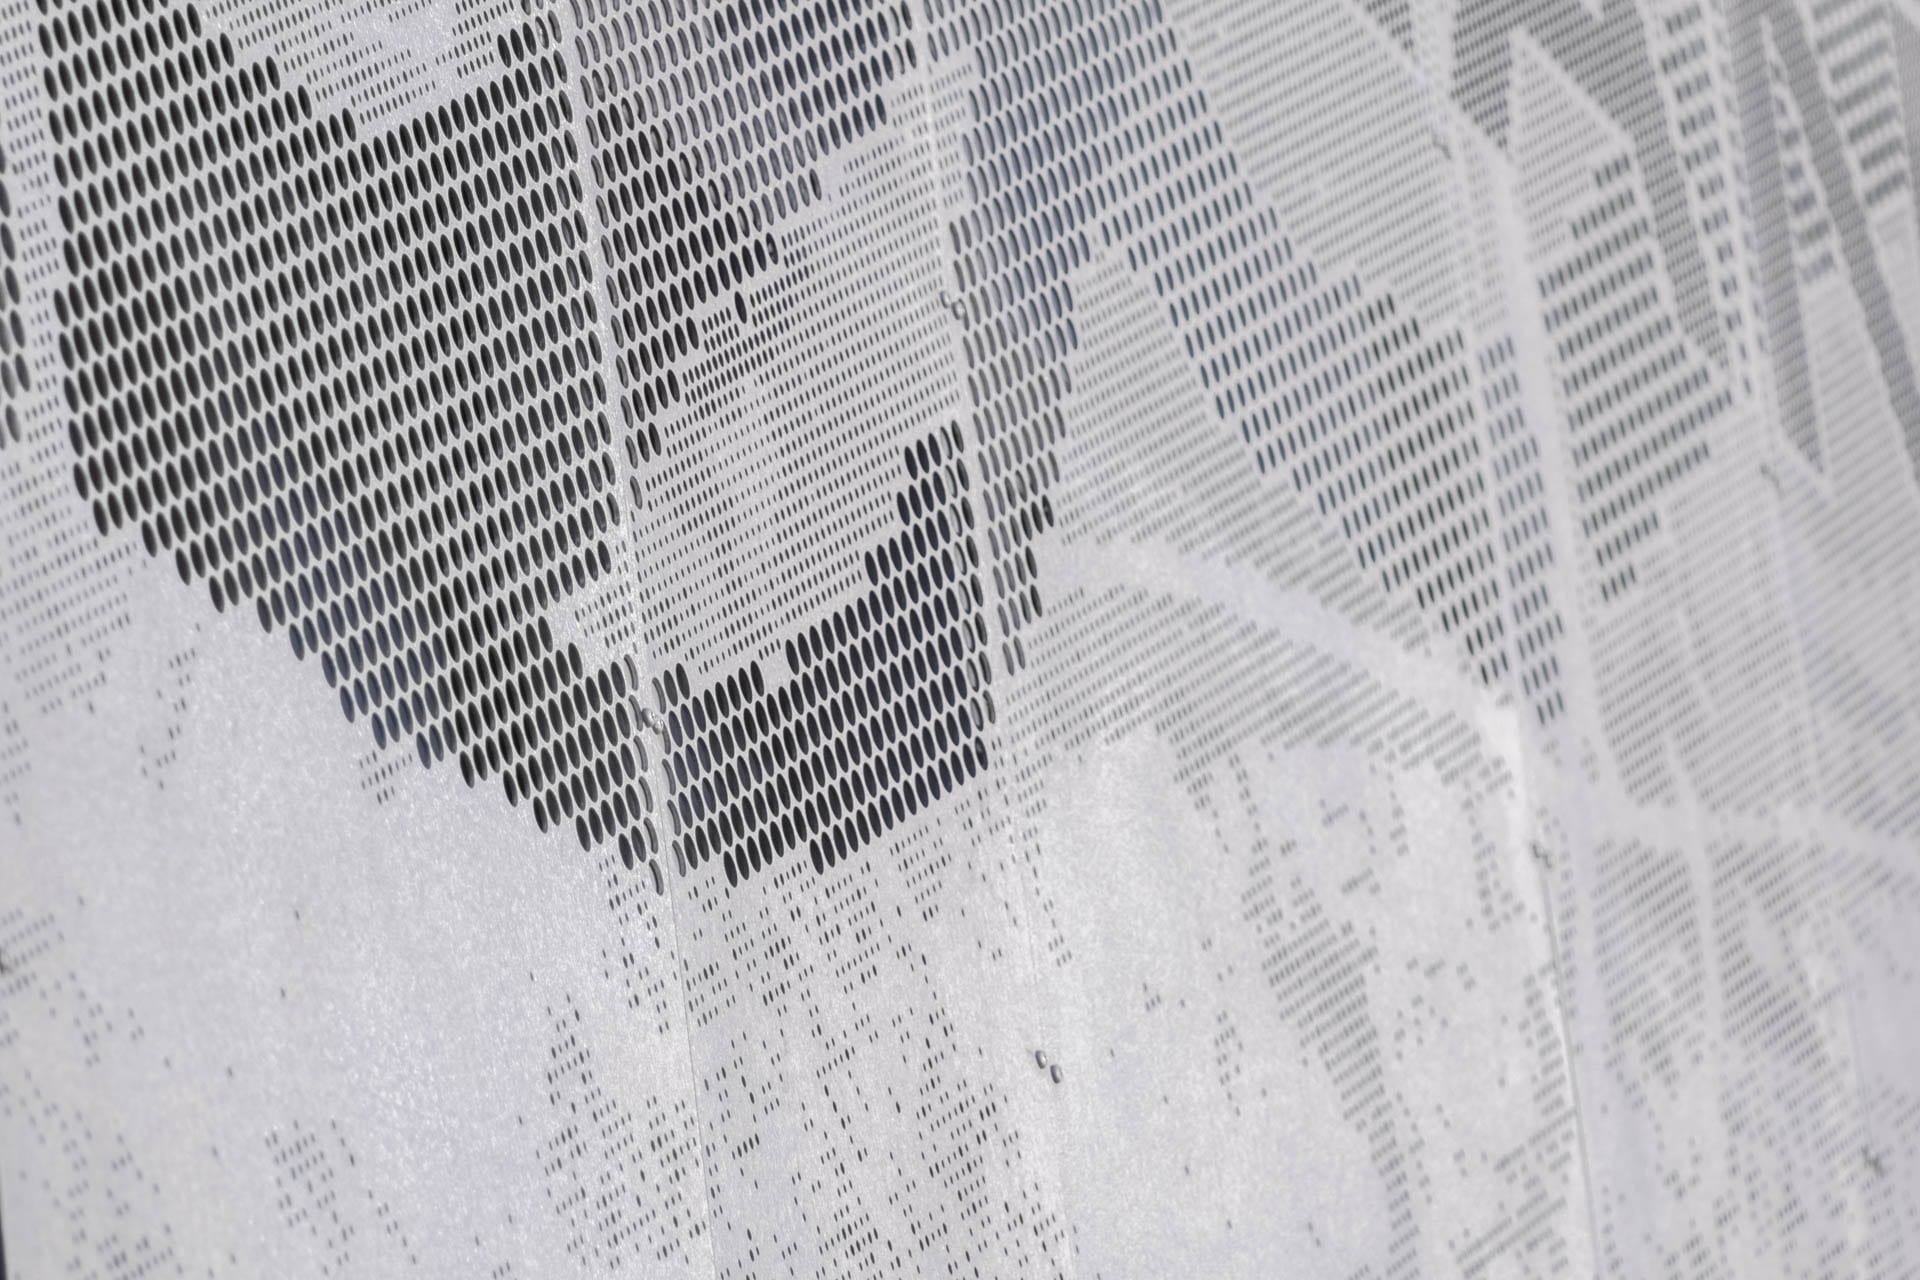 Detail of the ImageWall Perforated Metal Signage used for Highland Park in Minnesota.